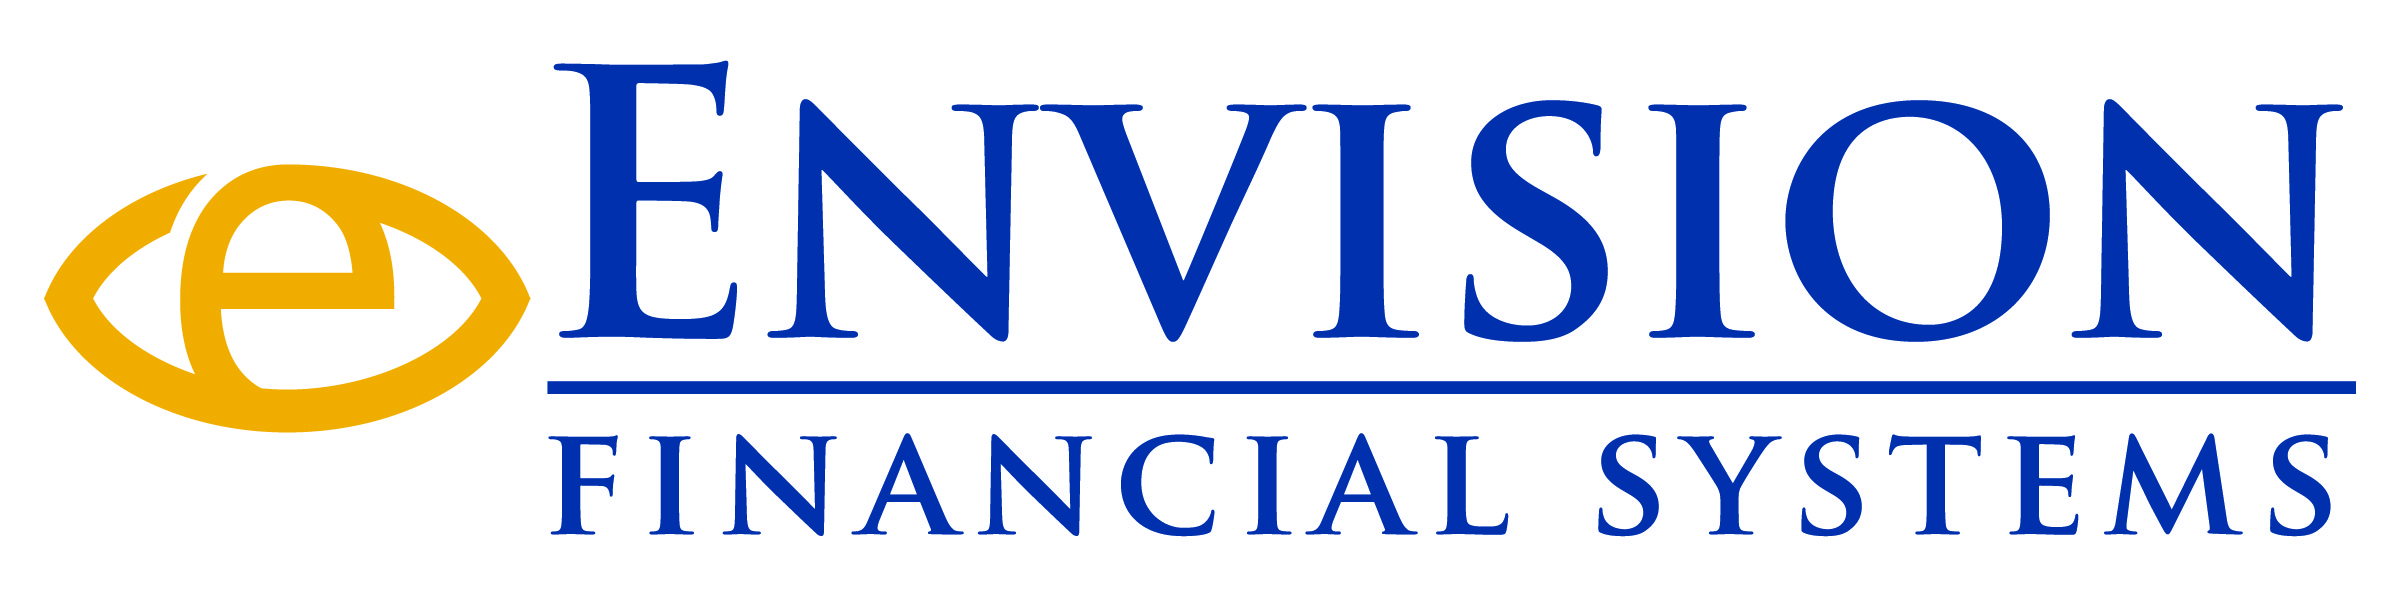 Envision Financial Systems logo